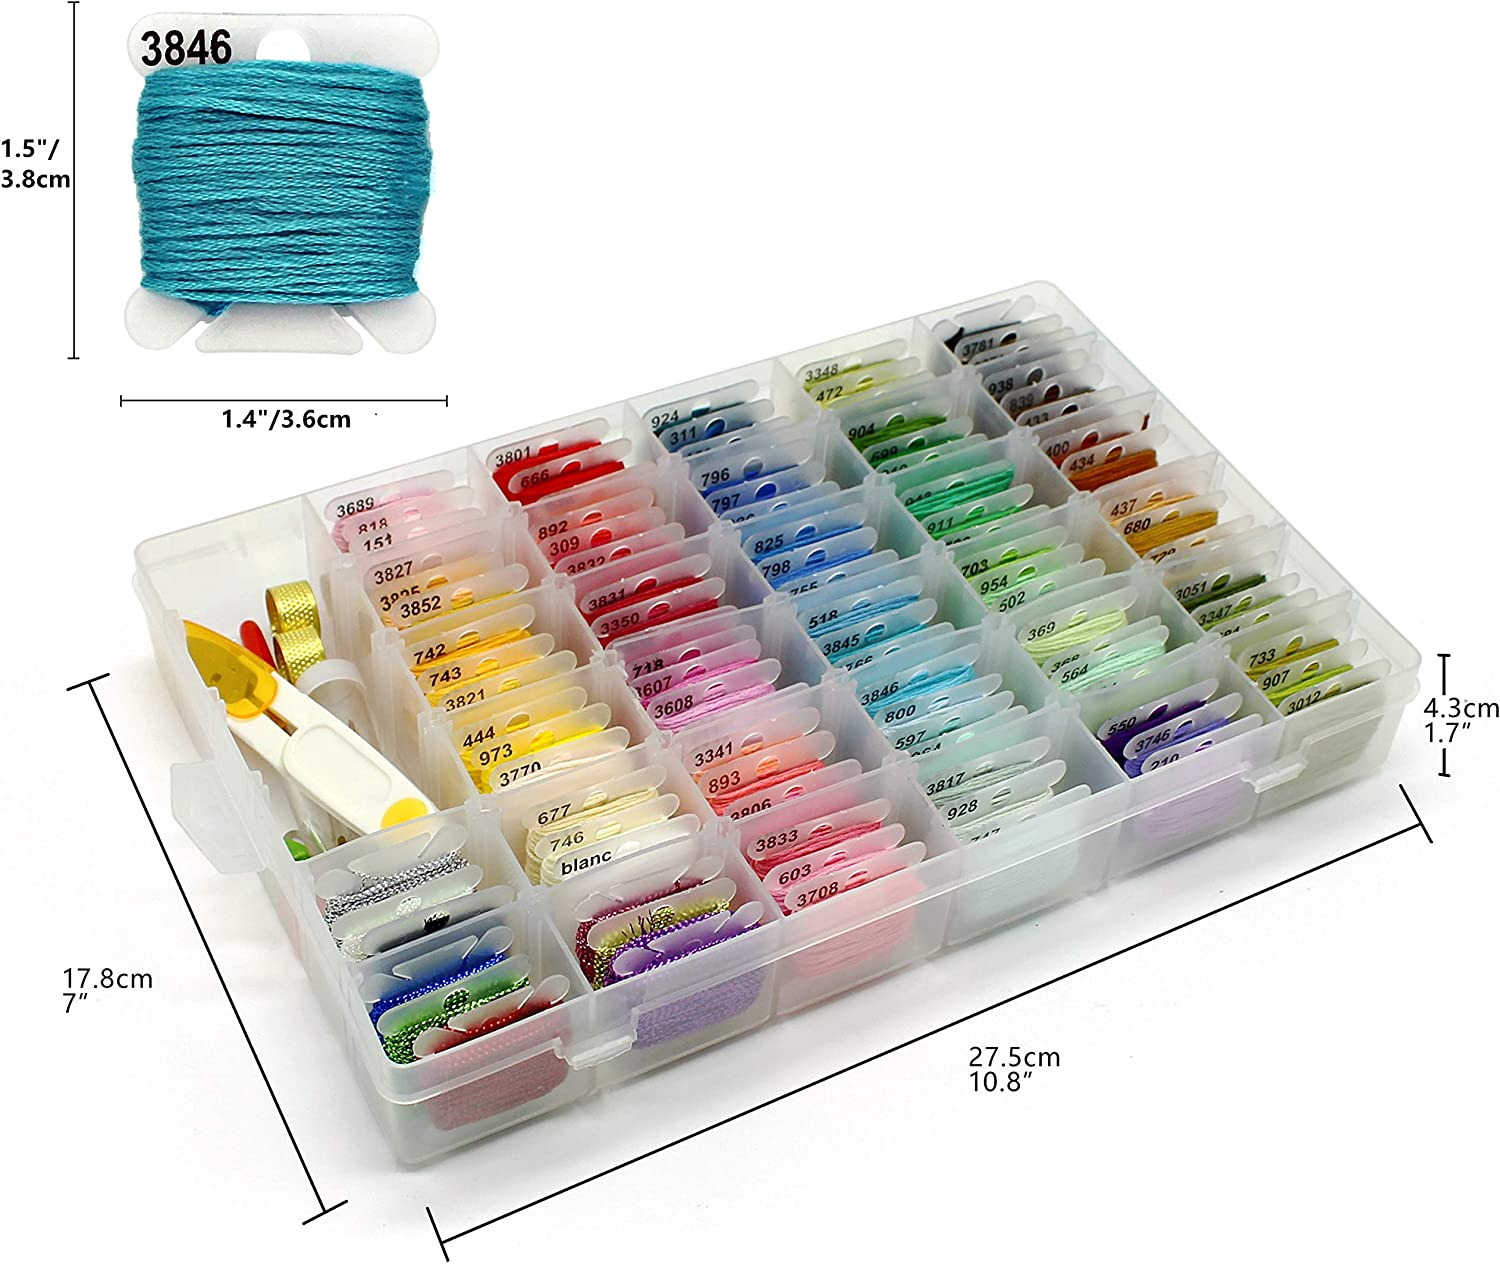 142PCS Embroidery Floss Friendship Bracelet String Includes 100 Rainbow Colors Metallic Thread Cotton Sewing Floss 40Pcs Cross Stitch Kits with Organizer Storage Box